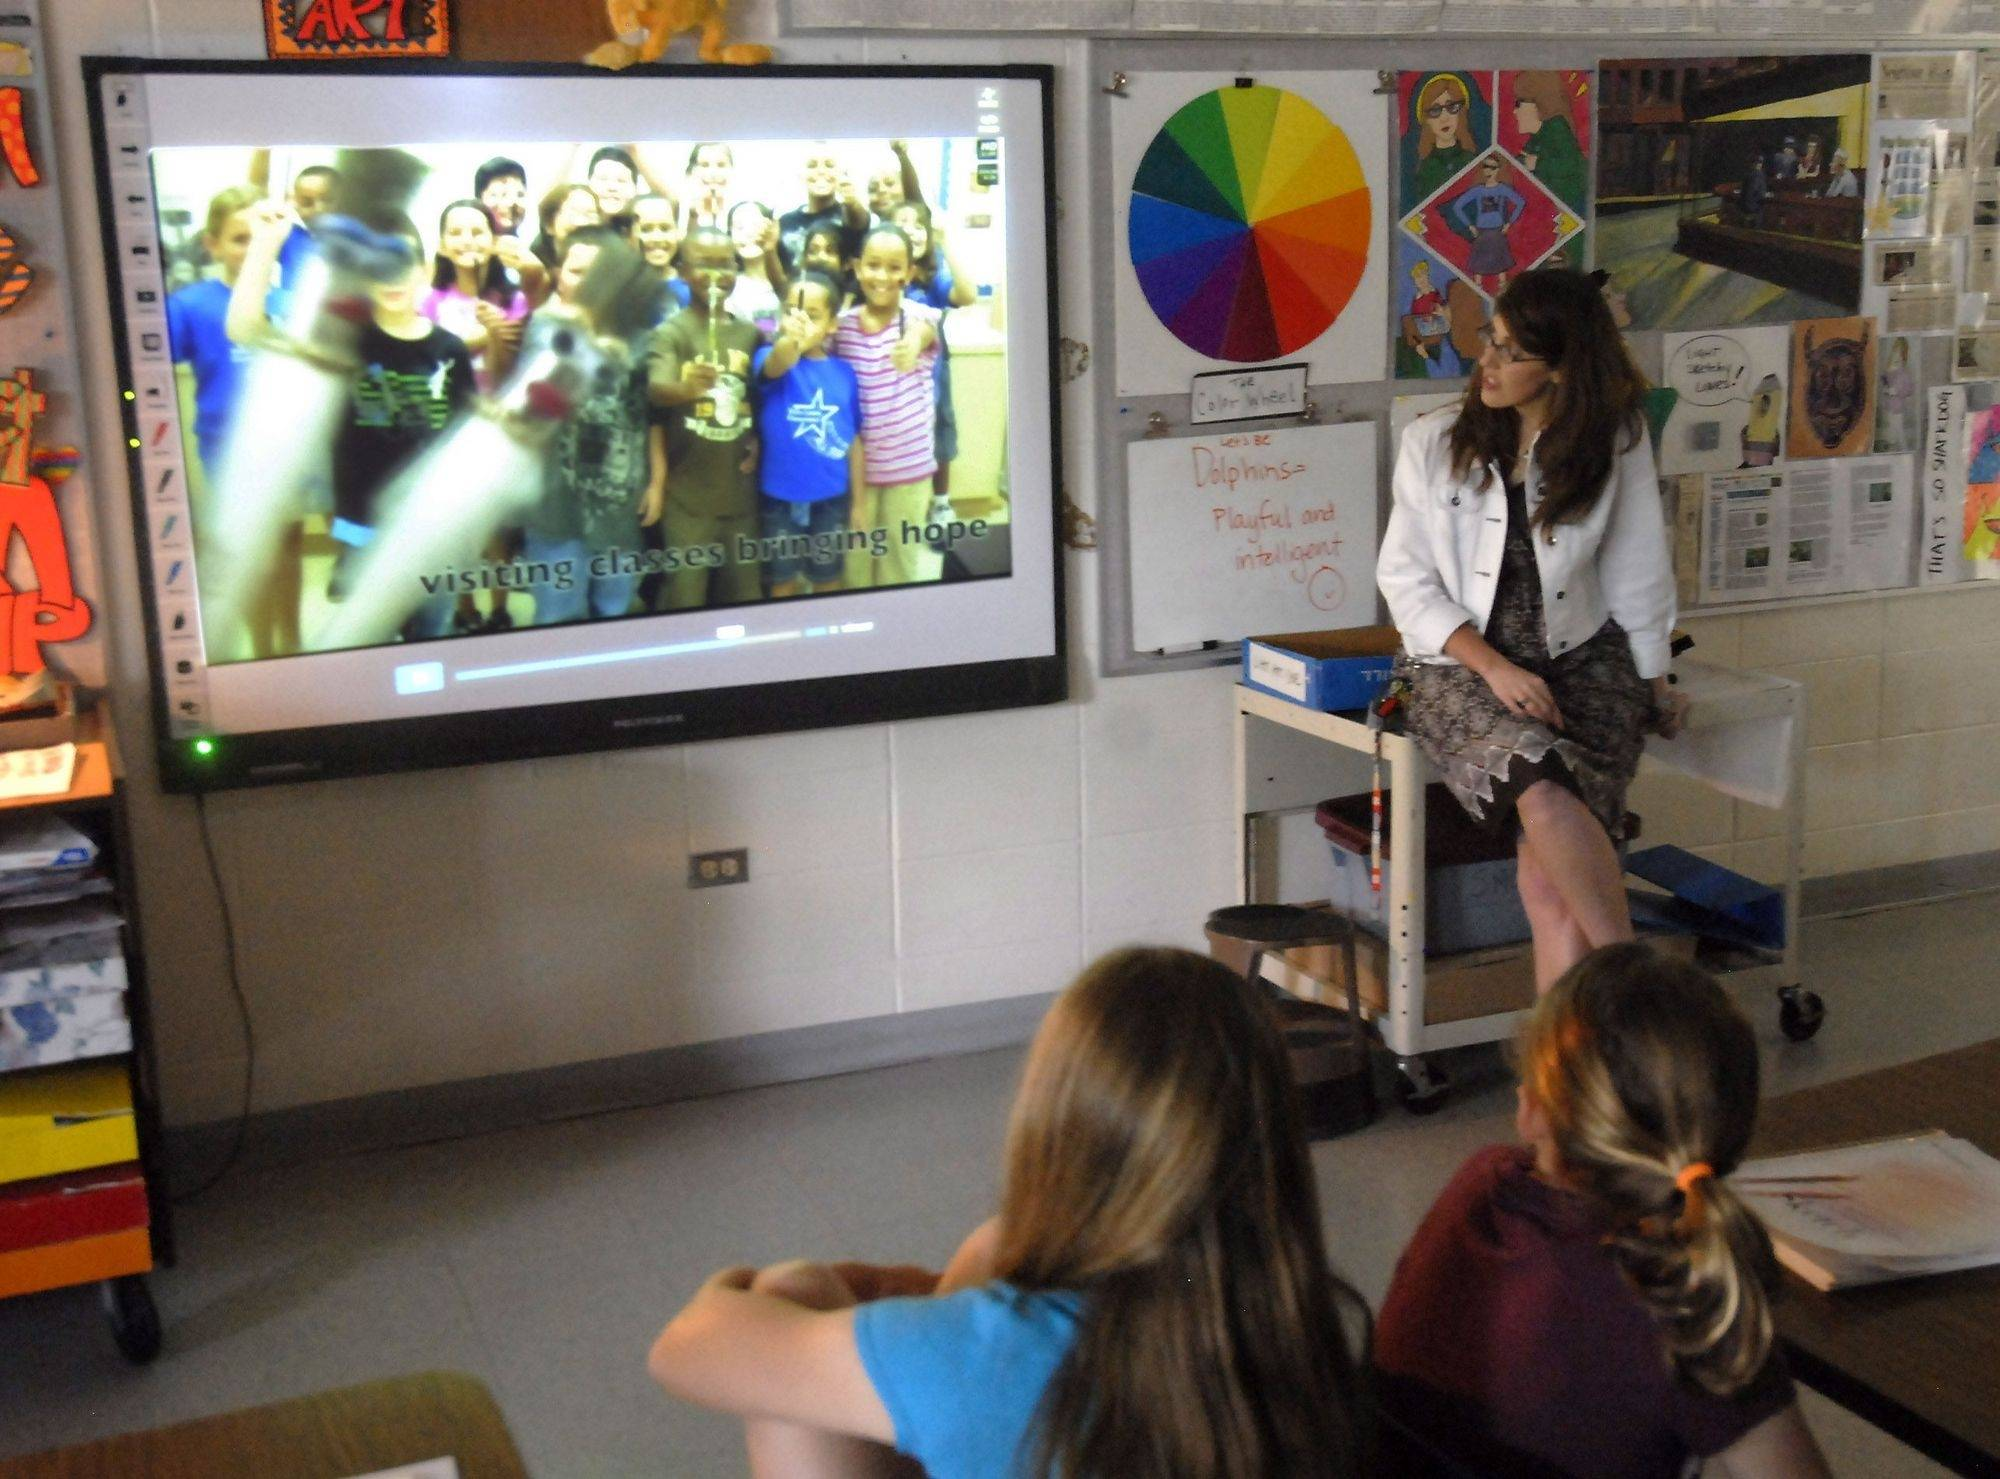 Art teacher Tricia Fuglestad works with students using a SMART Board at Dryden Elementary School in Arlington Heights.